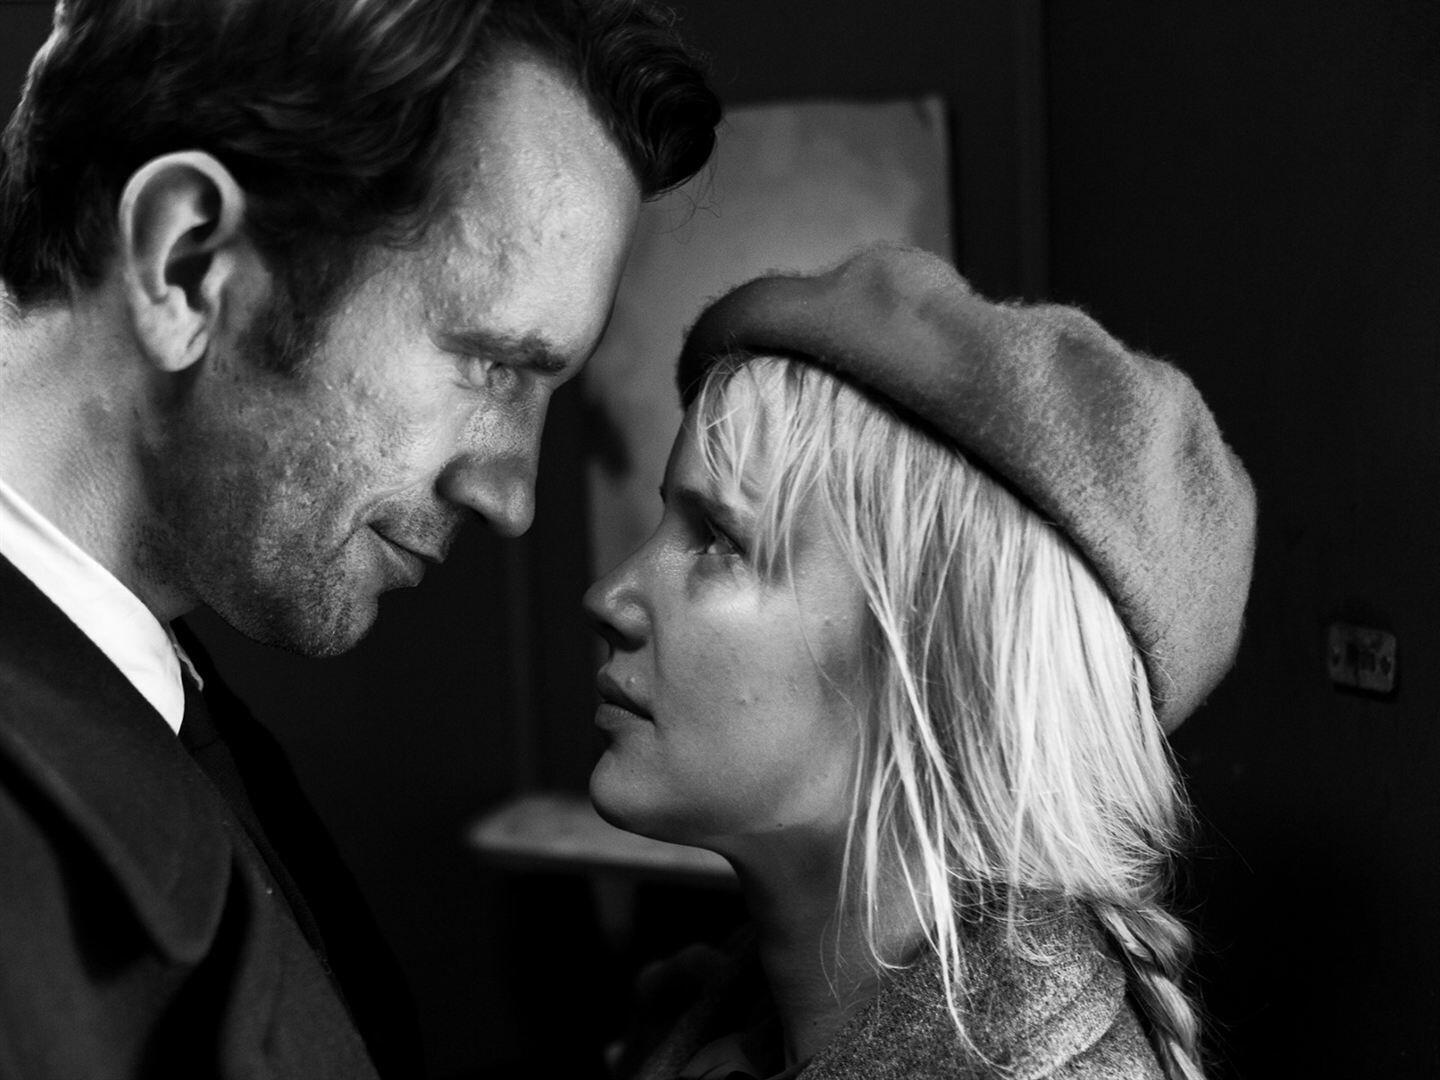 Joanna Kulig and Tomasz Kot in 'Cold War' directed by Pawel Pawlikowski.